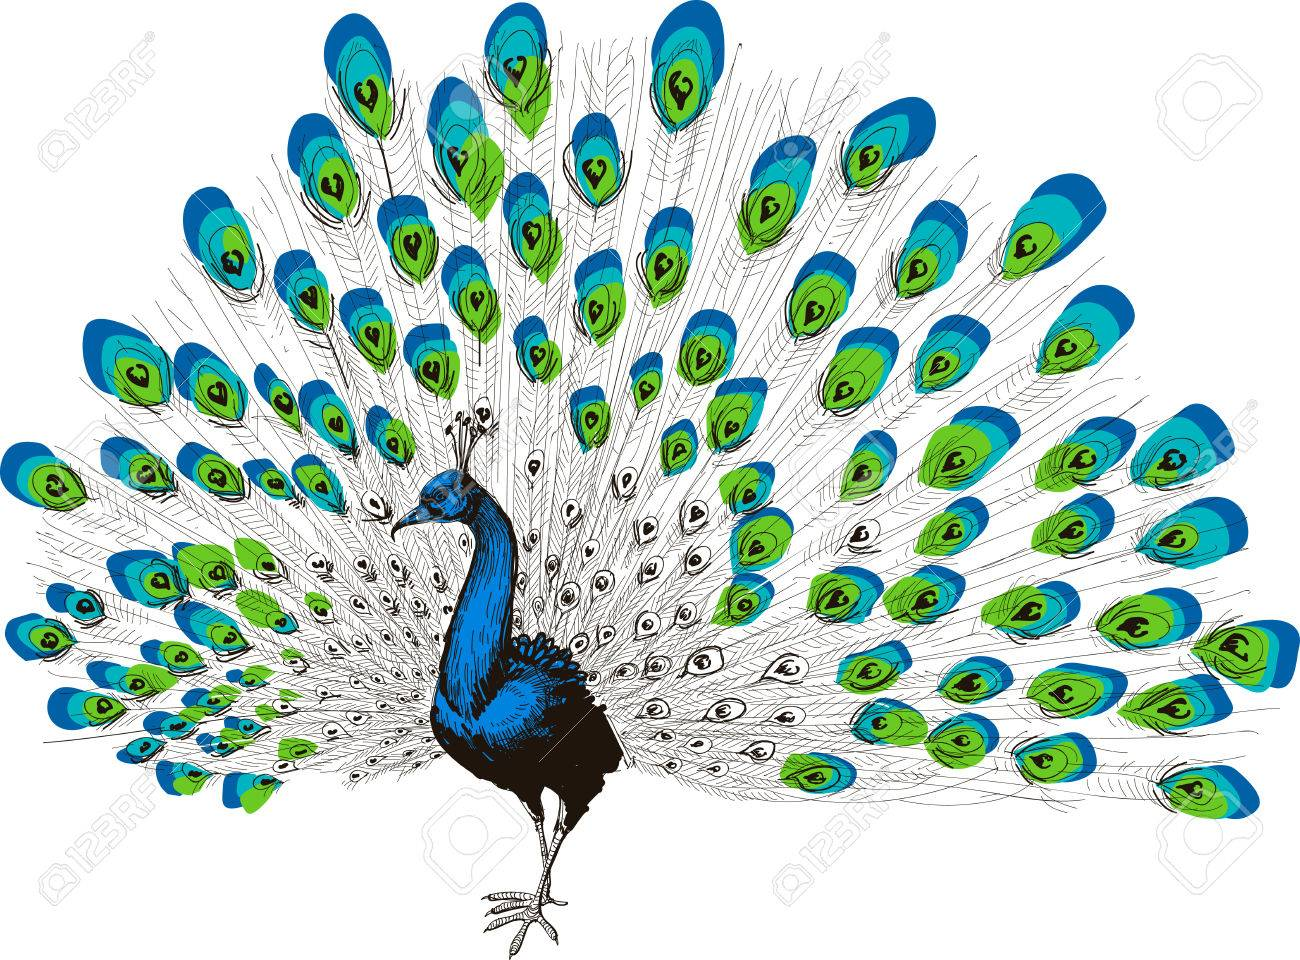 Colorful peacock drawing - 46667076